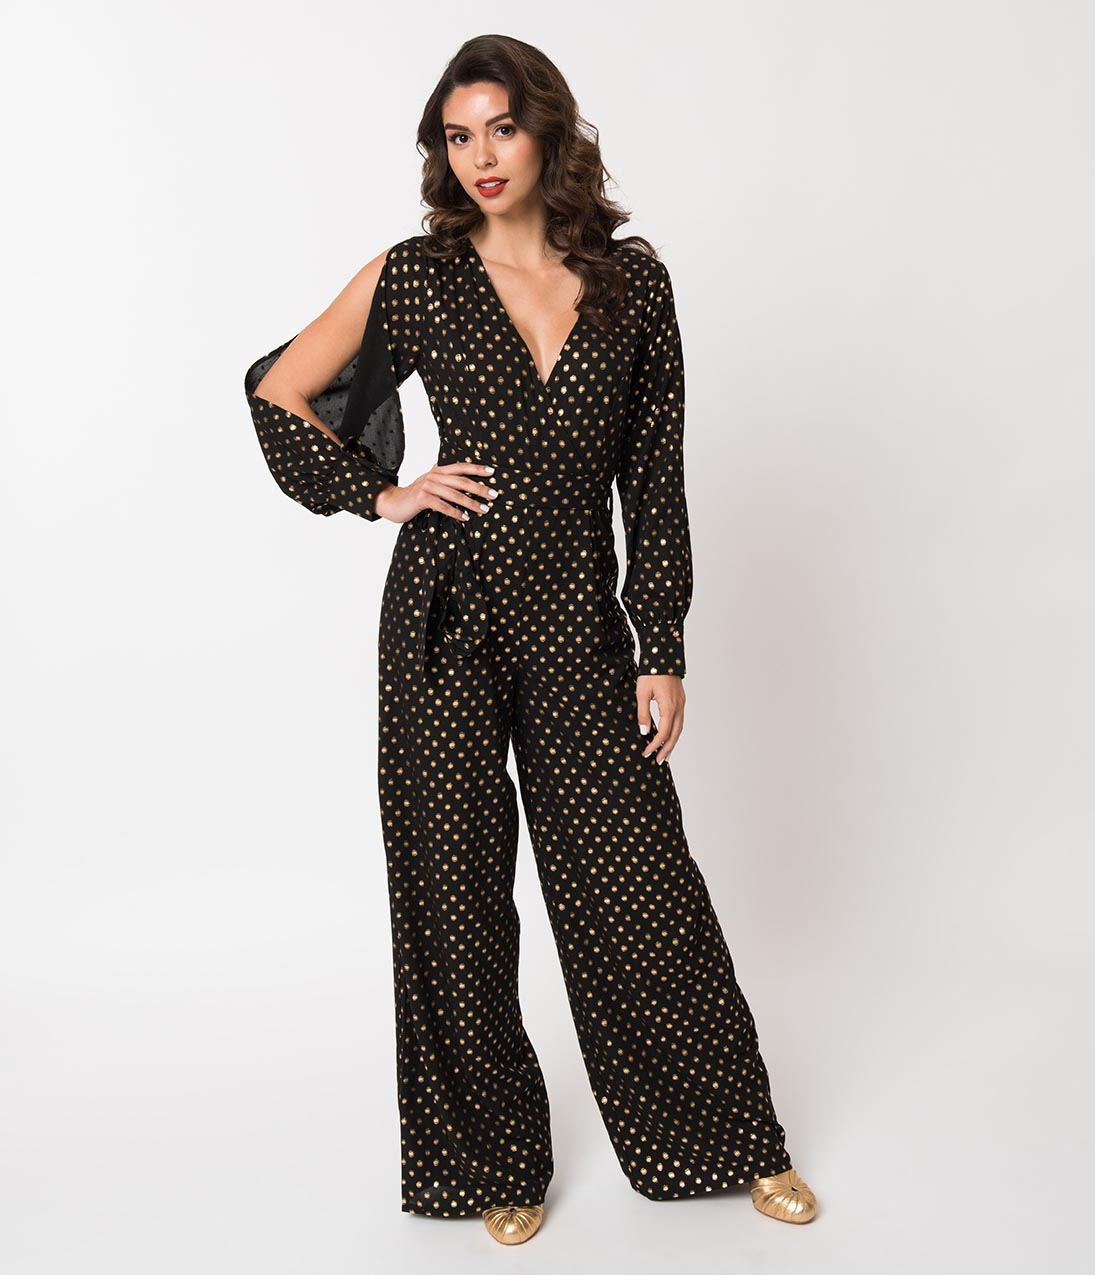 60s – 70s Pants, Jeans, Hippie, Bell Bottoms, Jumpsuits 1970S Style Black  Gold Polka Dot Long Sleeve Jumpsuit $51.00 AT vintagedancer.com